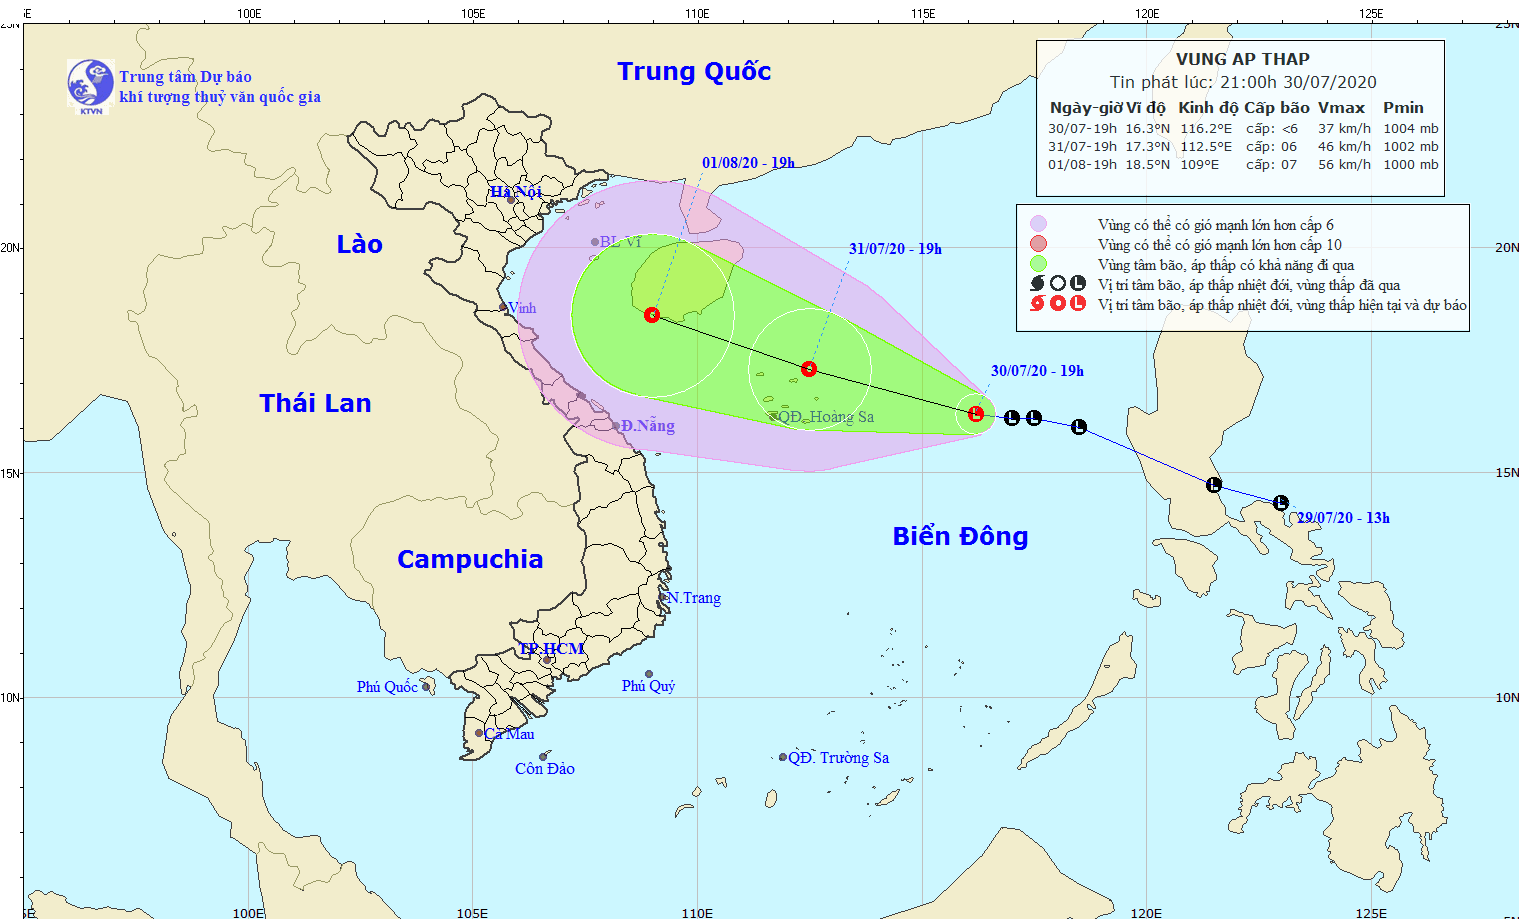 Vietnam weather August 1: Tropical depression to become storm, bringing heavy rains across country